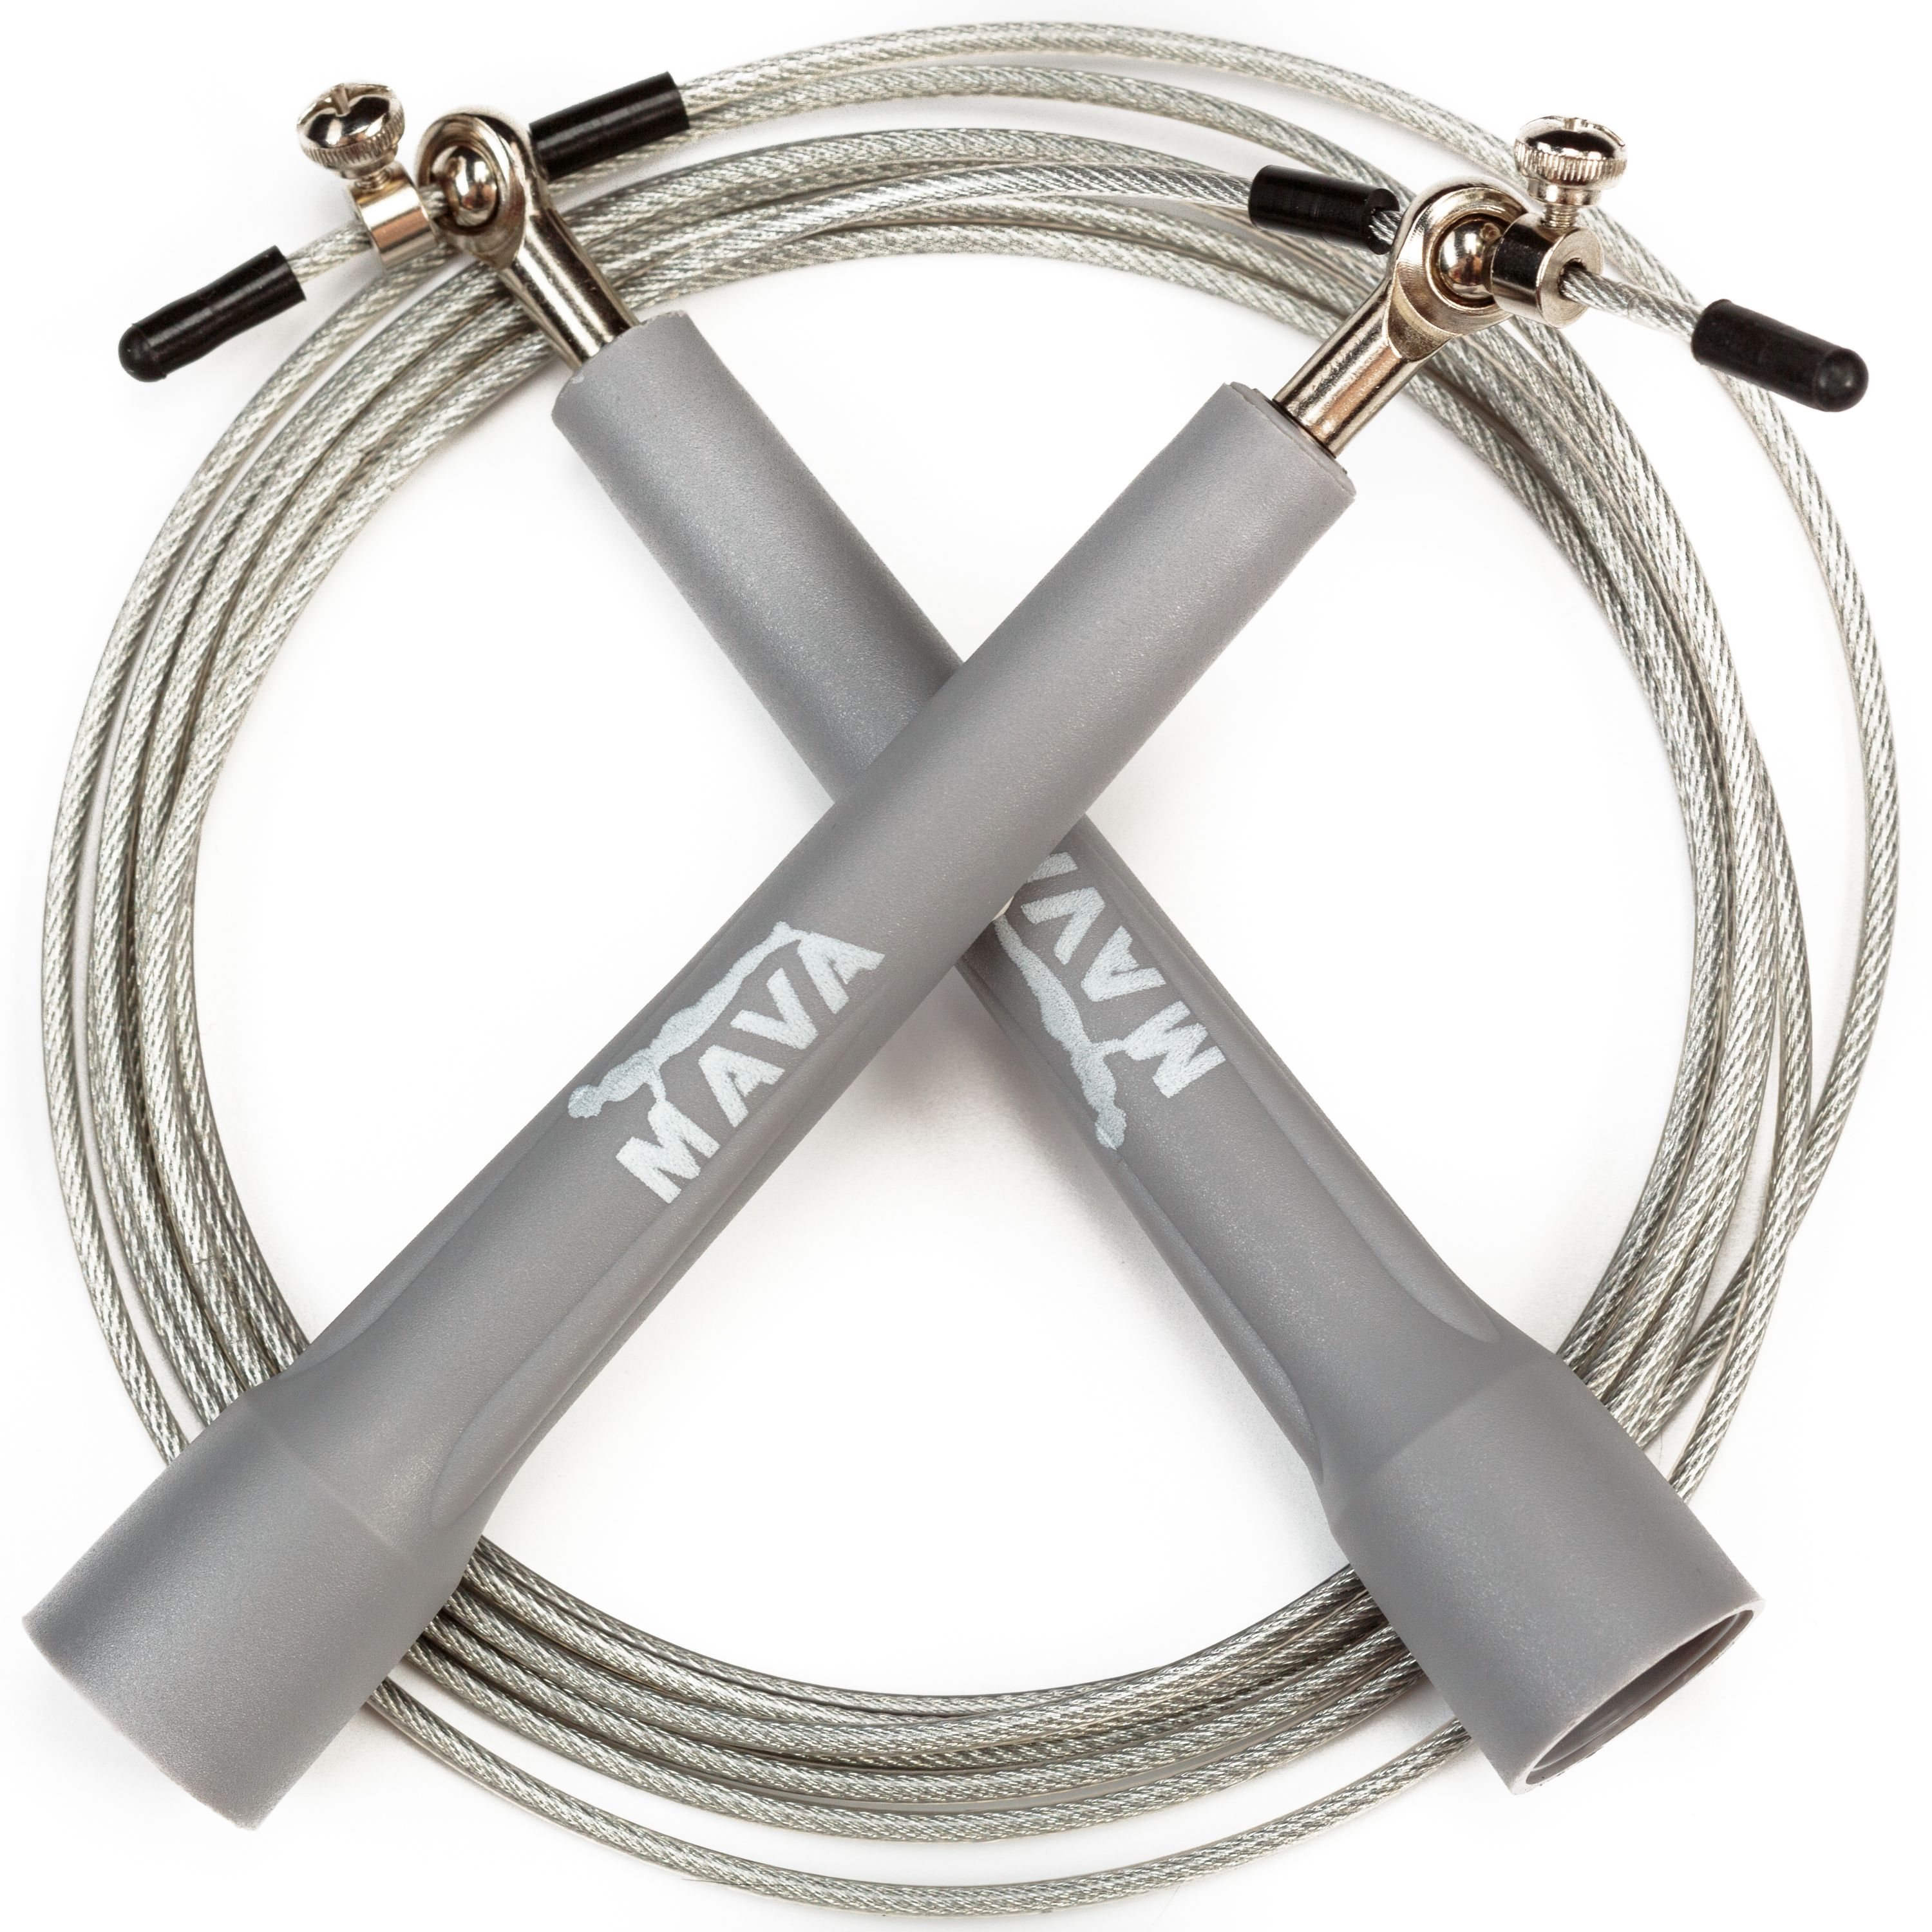 Mava Jump Rope Blue Speed Rope Jump Rope Workout Accessories